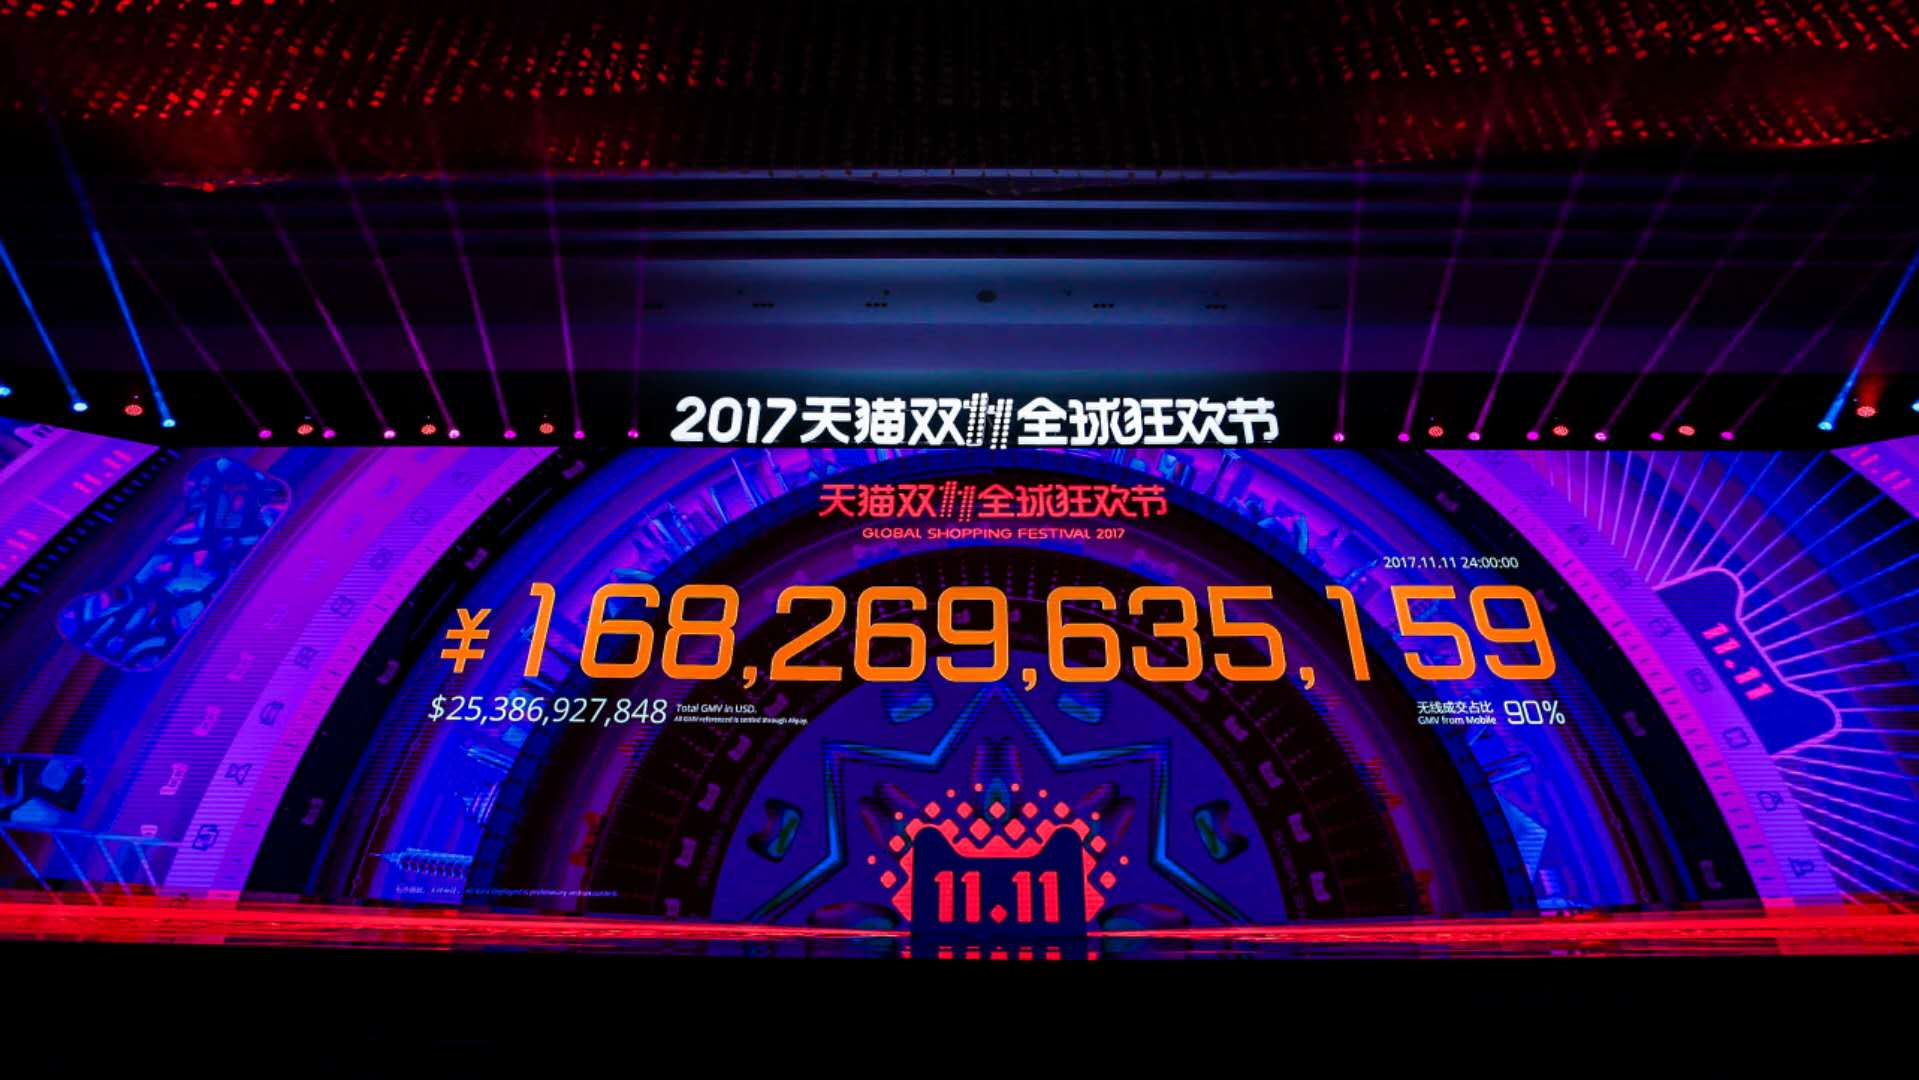 Final sales results flash up on the big screen at an Alibaba Singles Day event in Shanghai.